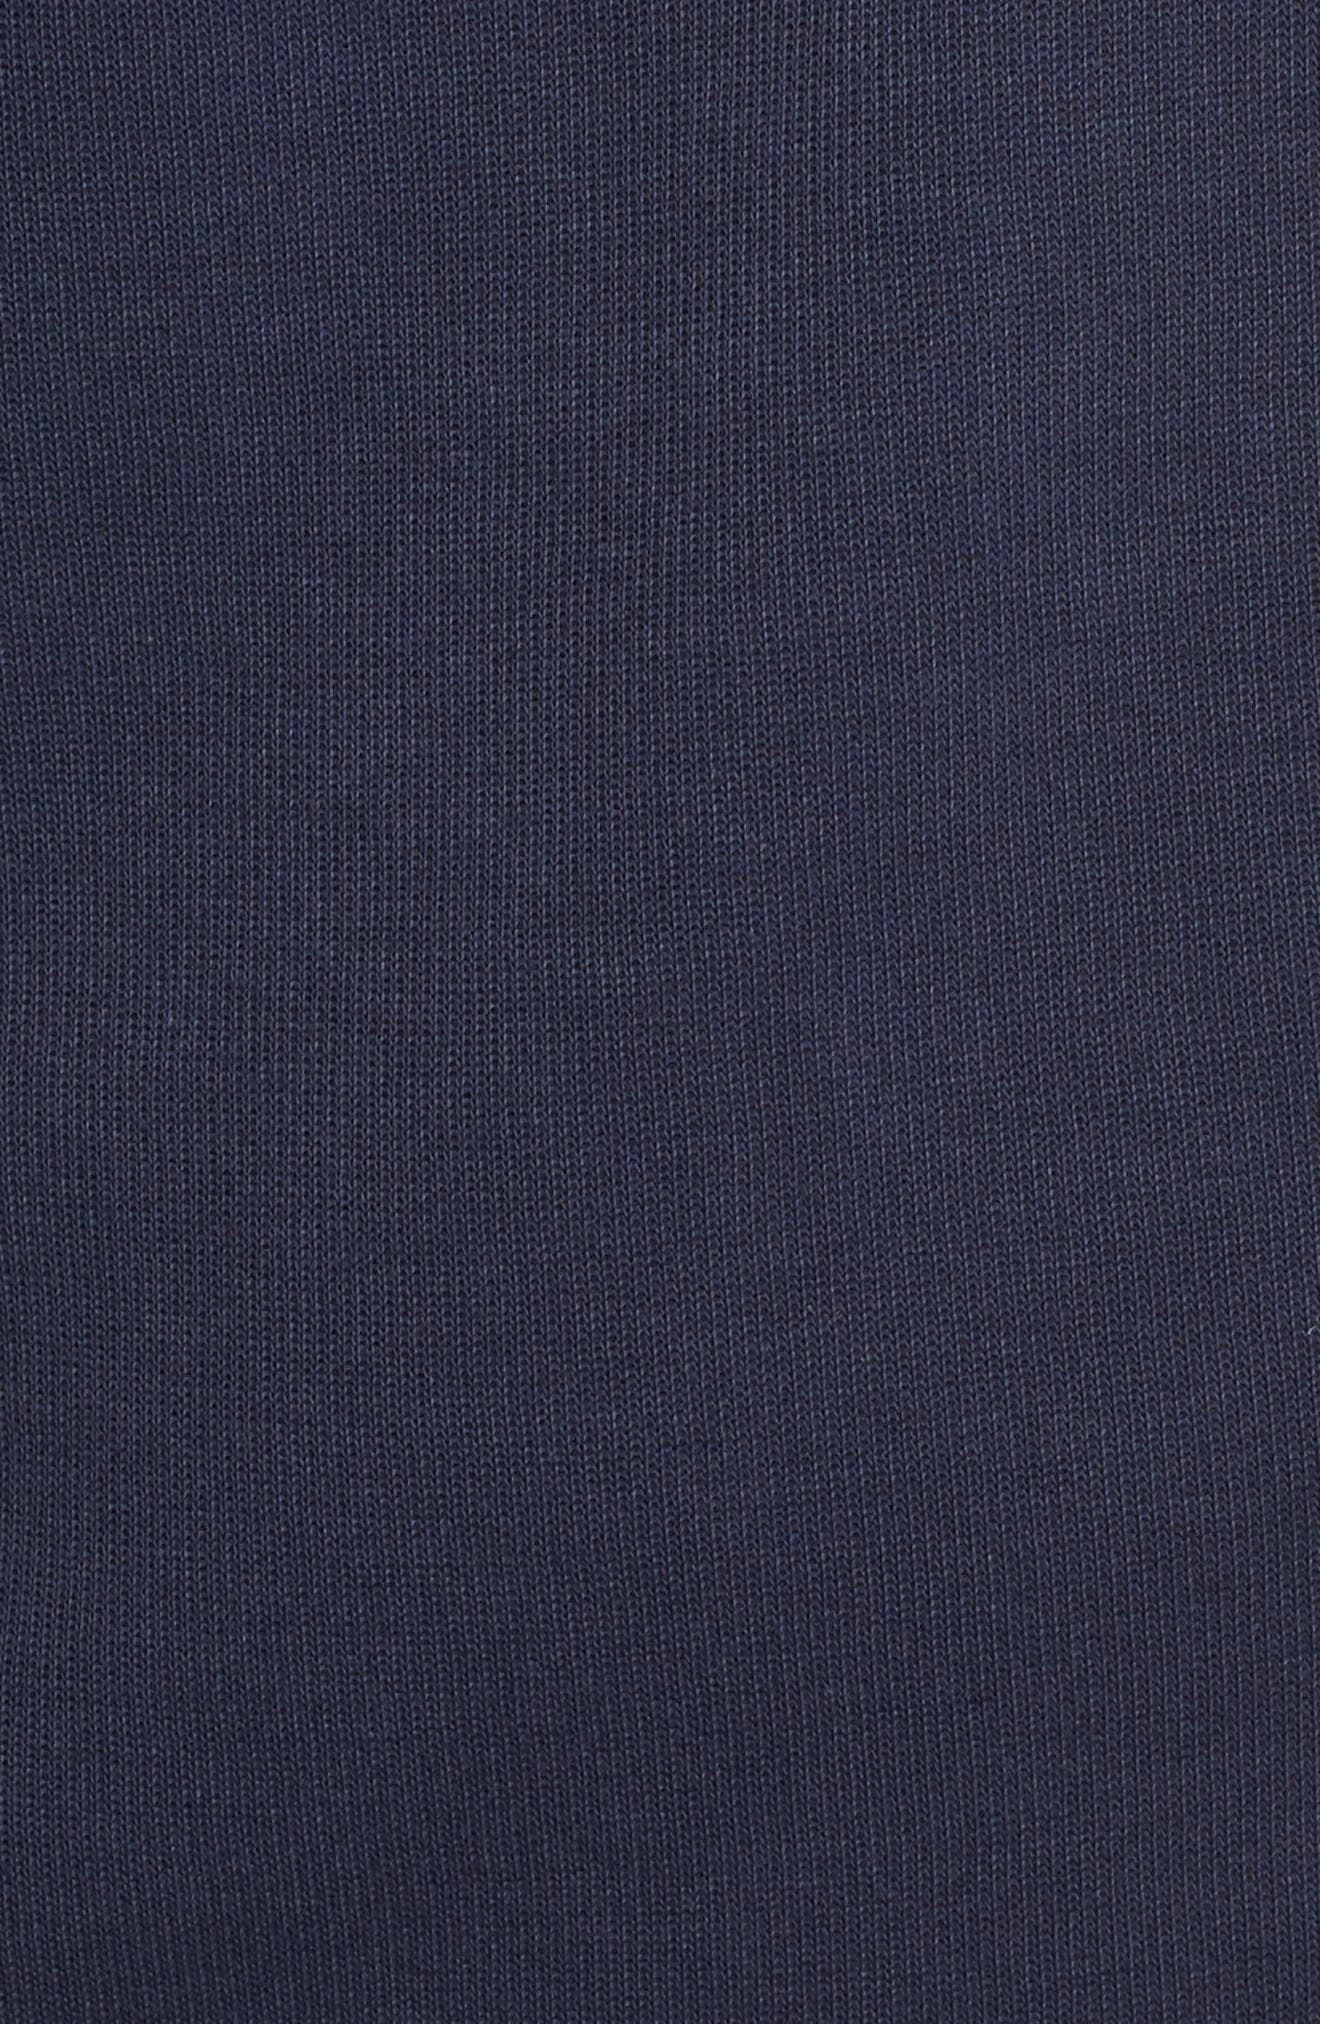 Bayview Quarter Zip Pullover,                             Alternate thumbnail 5, color,                             Liberty Navy